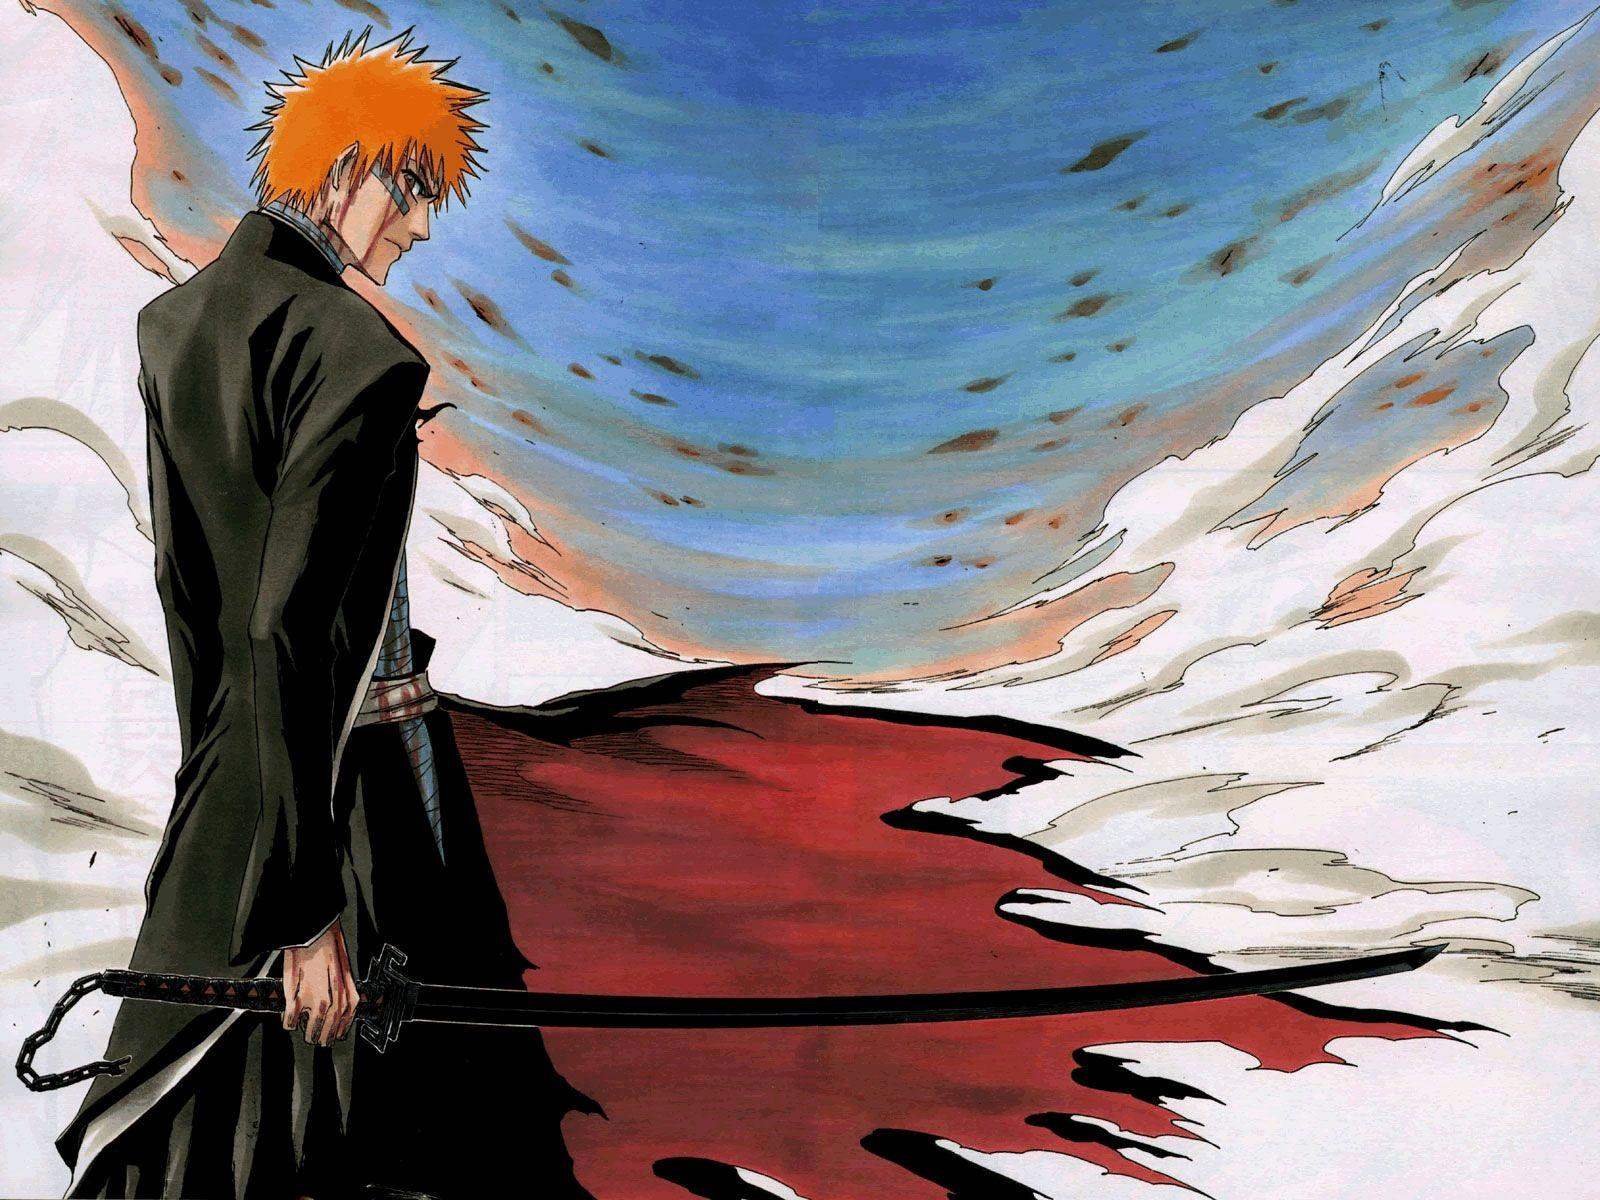 Bleach Ichigo Bankai Wallpapers - Top